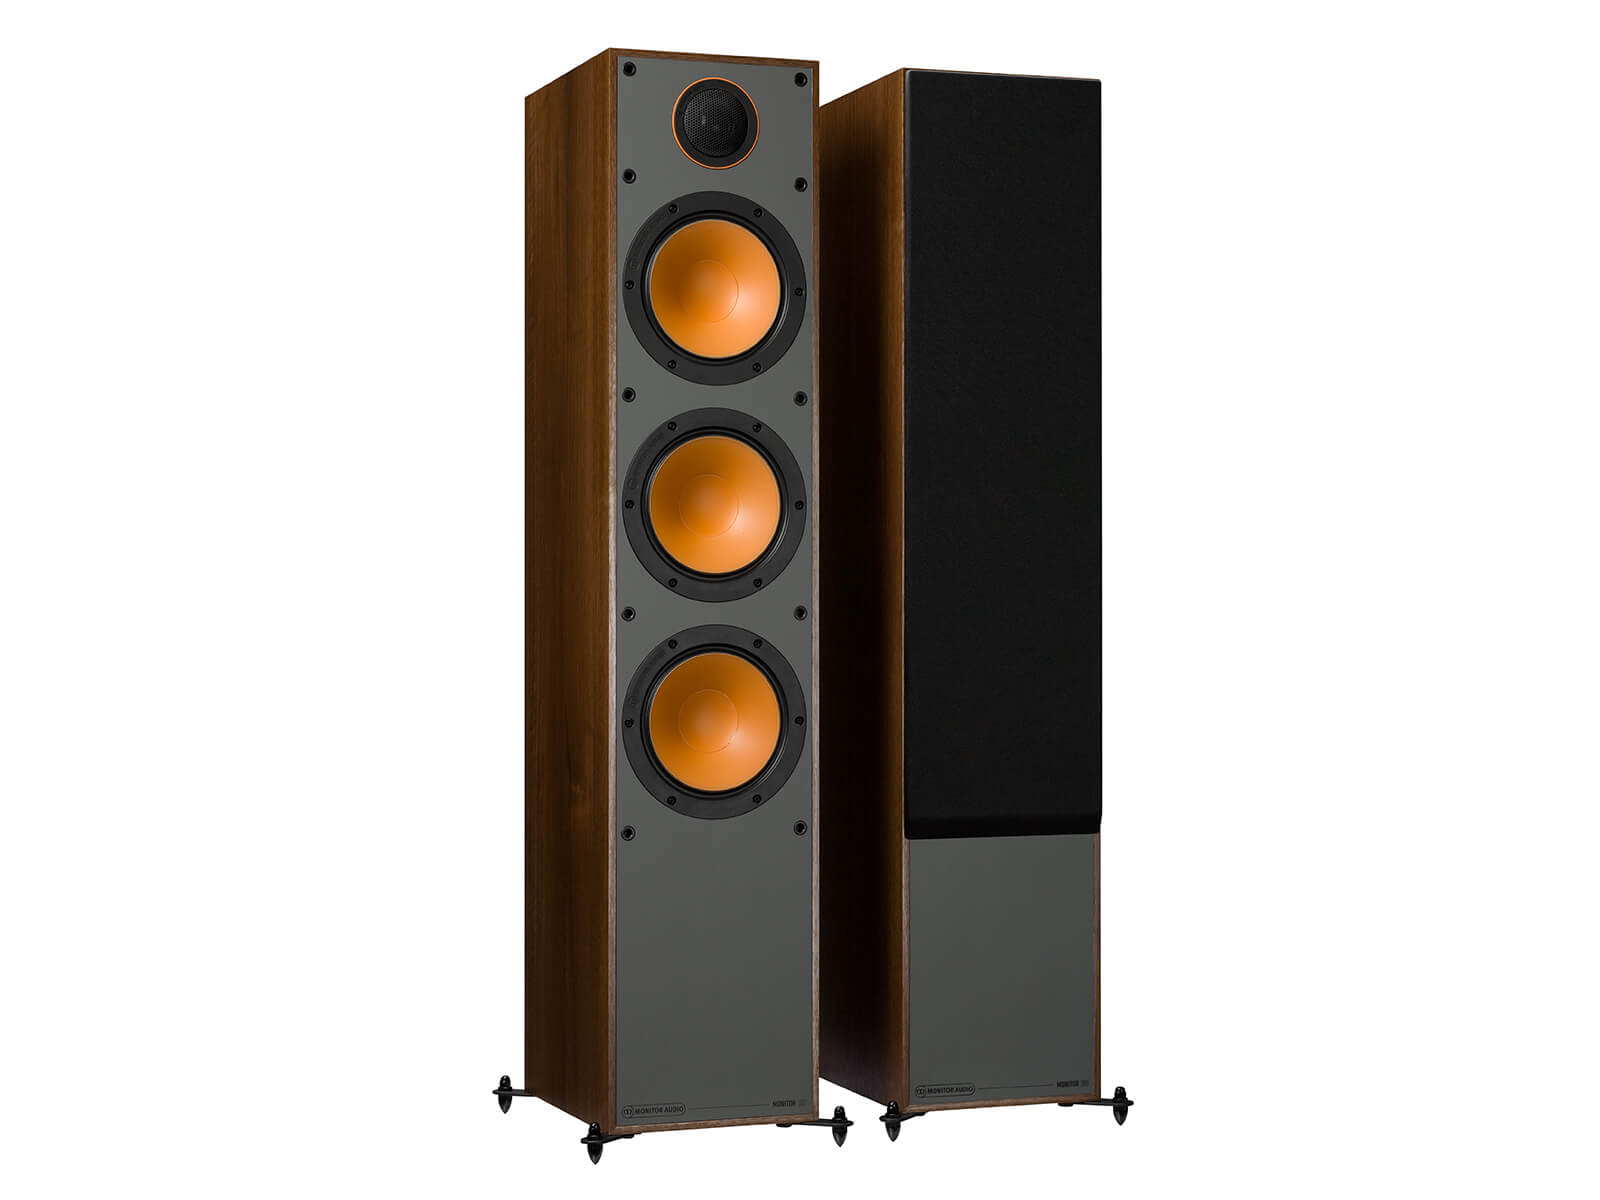 Monitor 300, floorstanding speakers, with and without grille in a walnut vinyl finish.